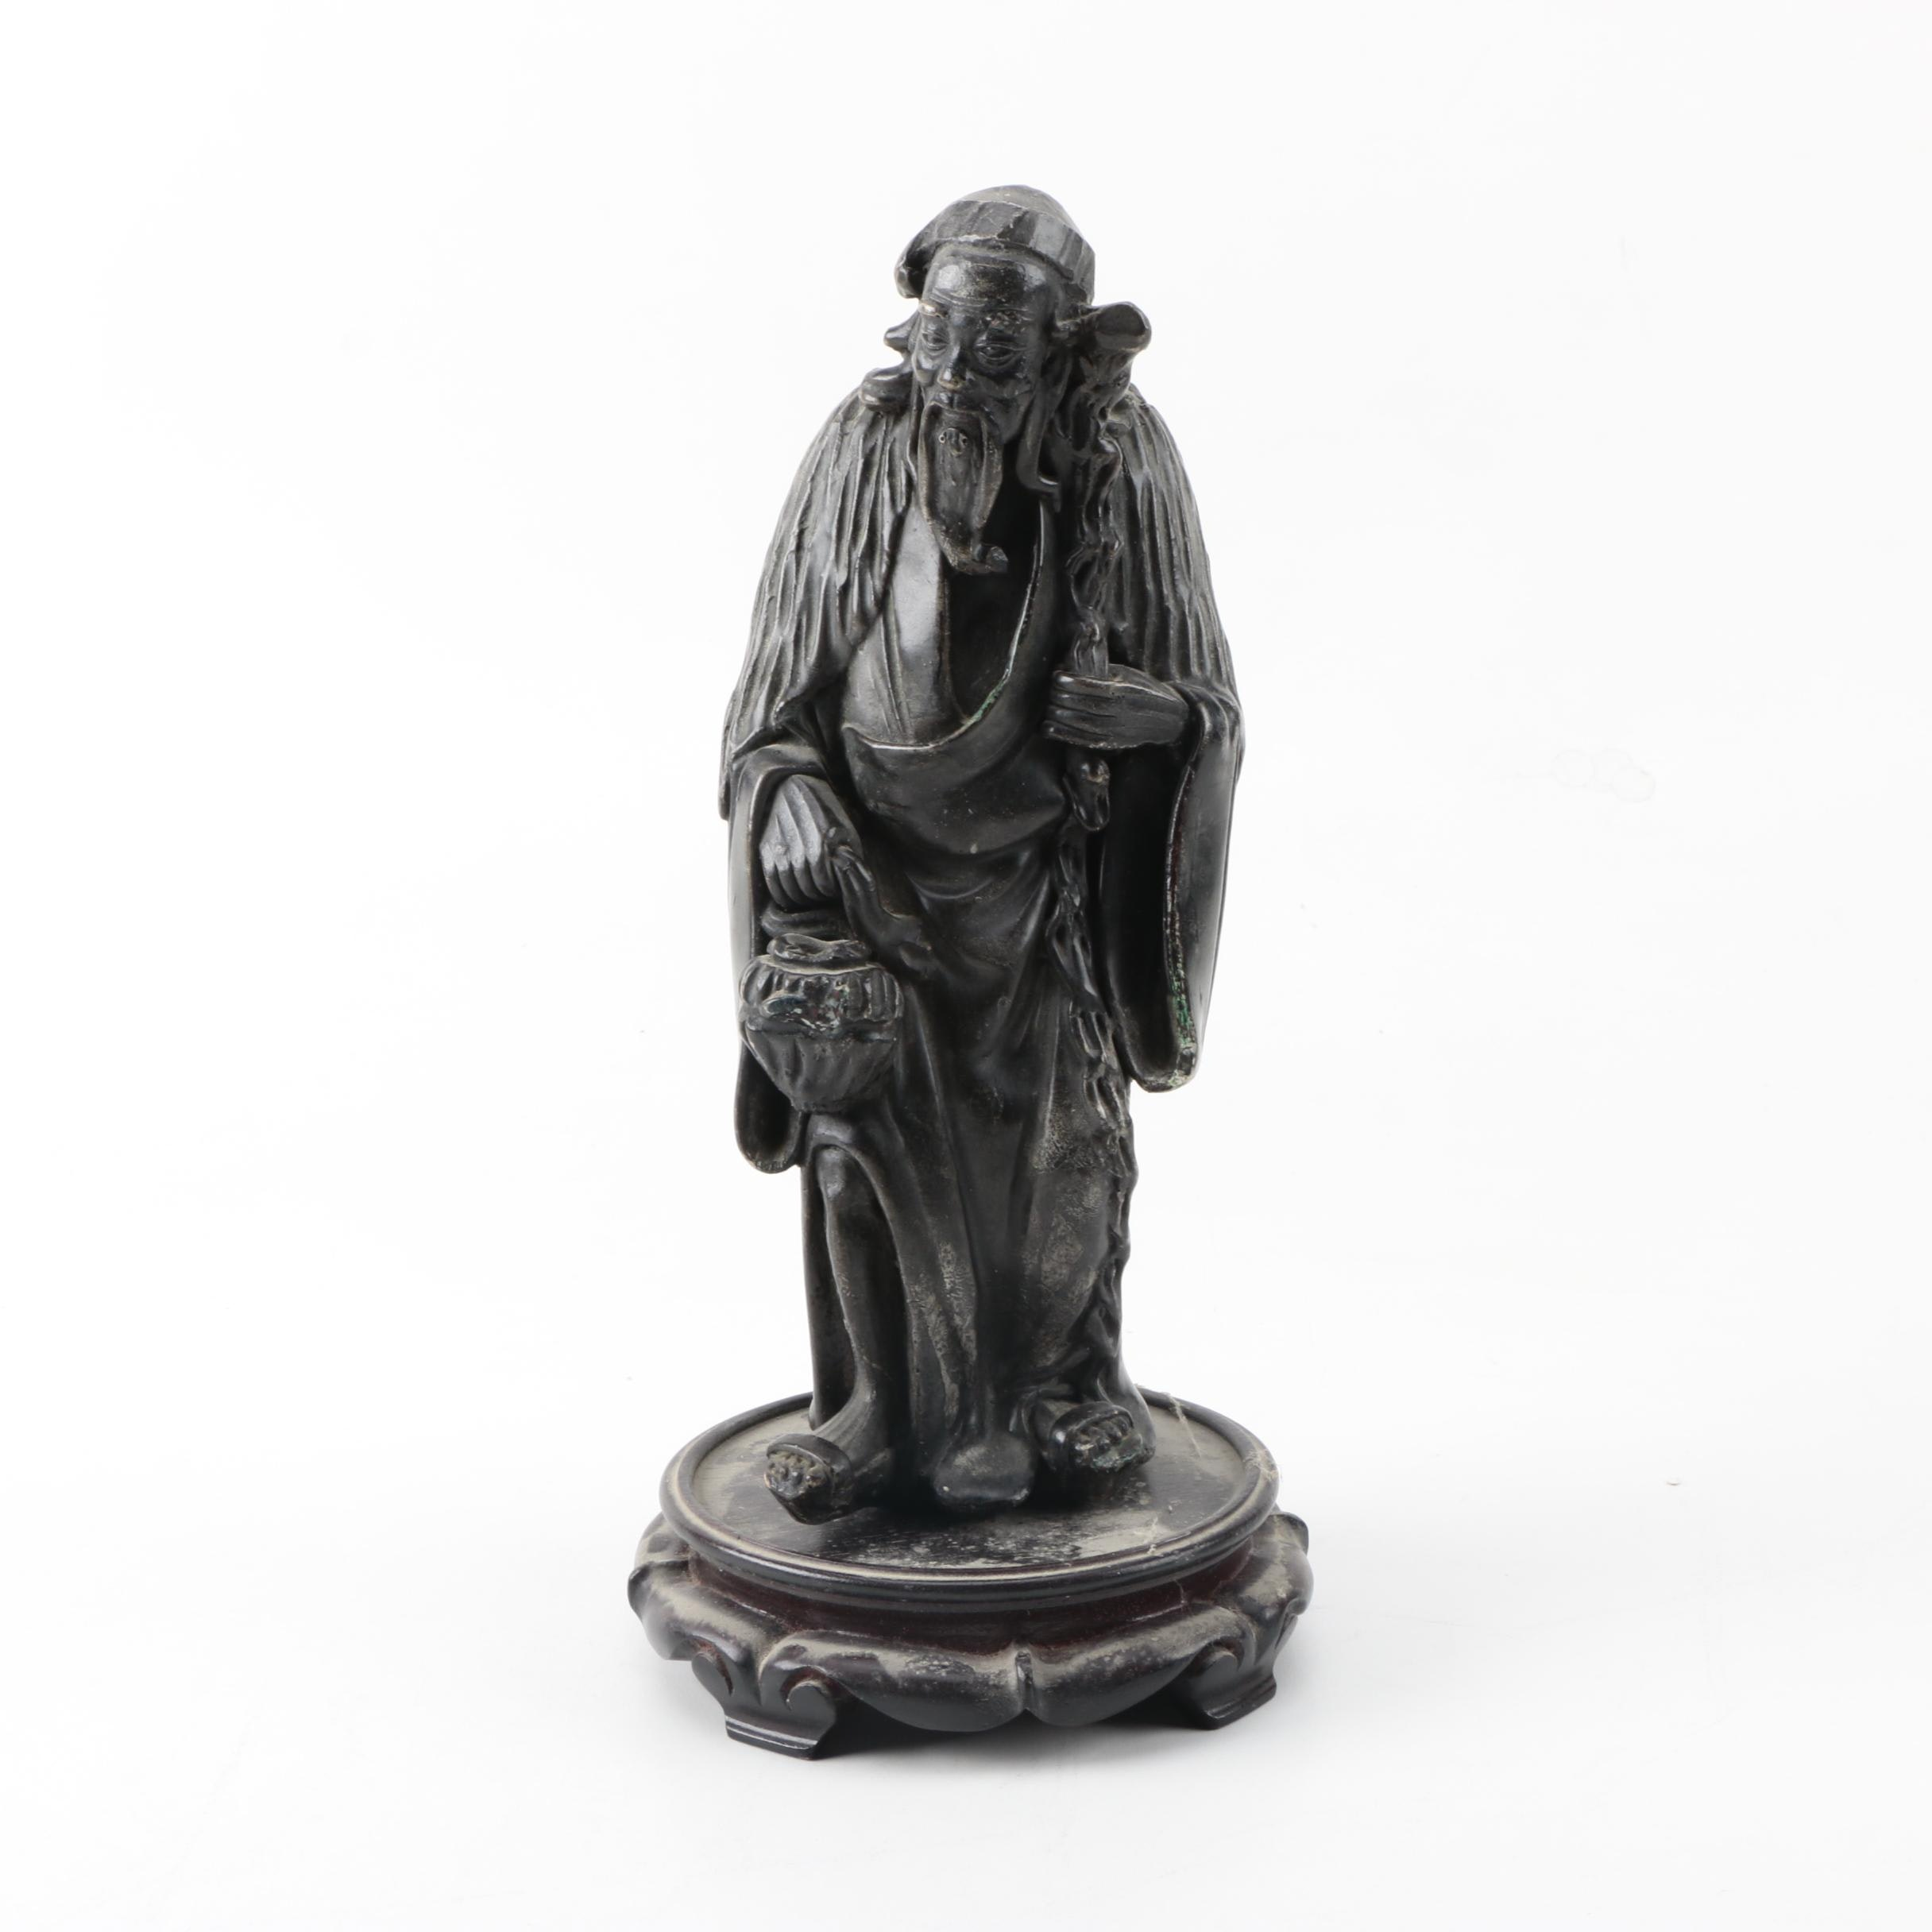 Chinese Figurine of Elderly Man and Wooden Stand